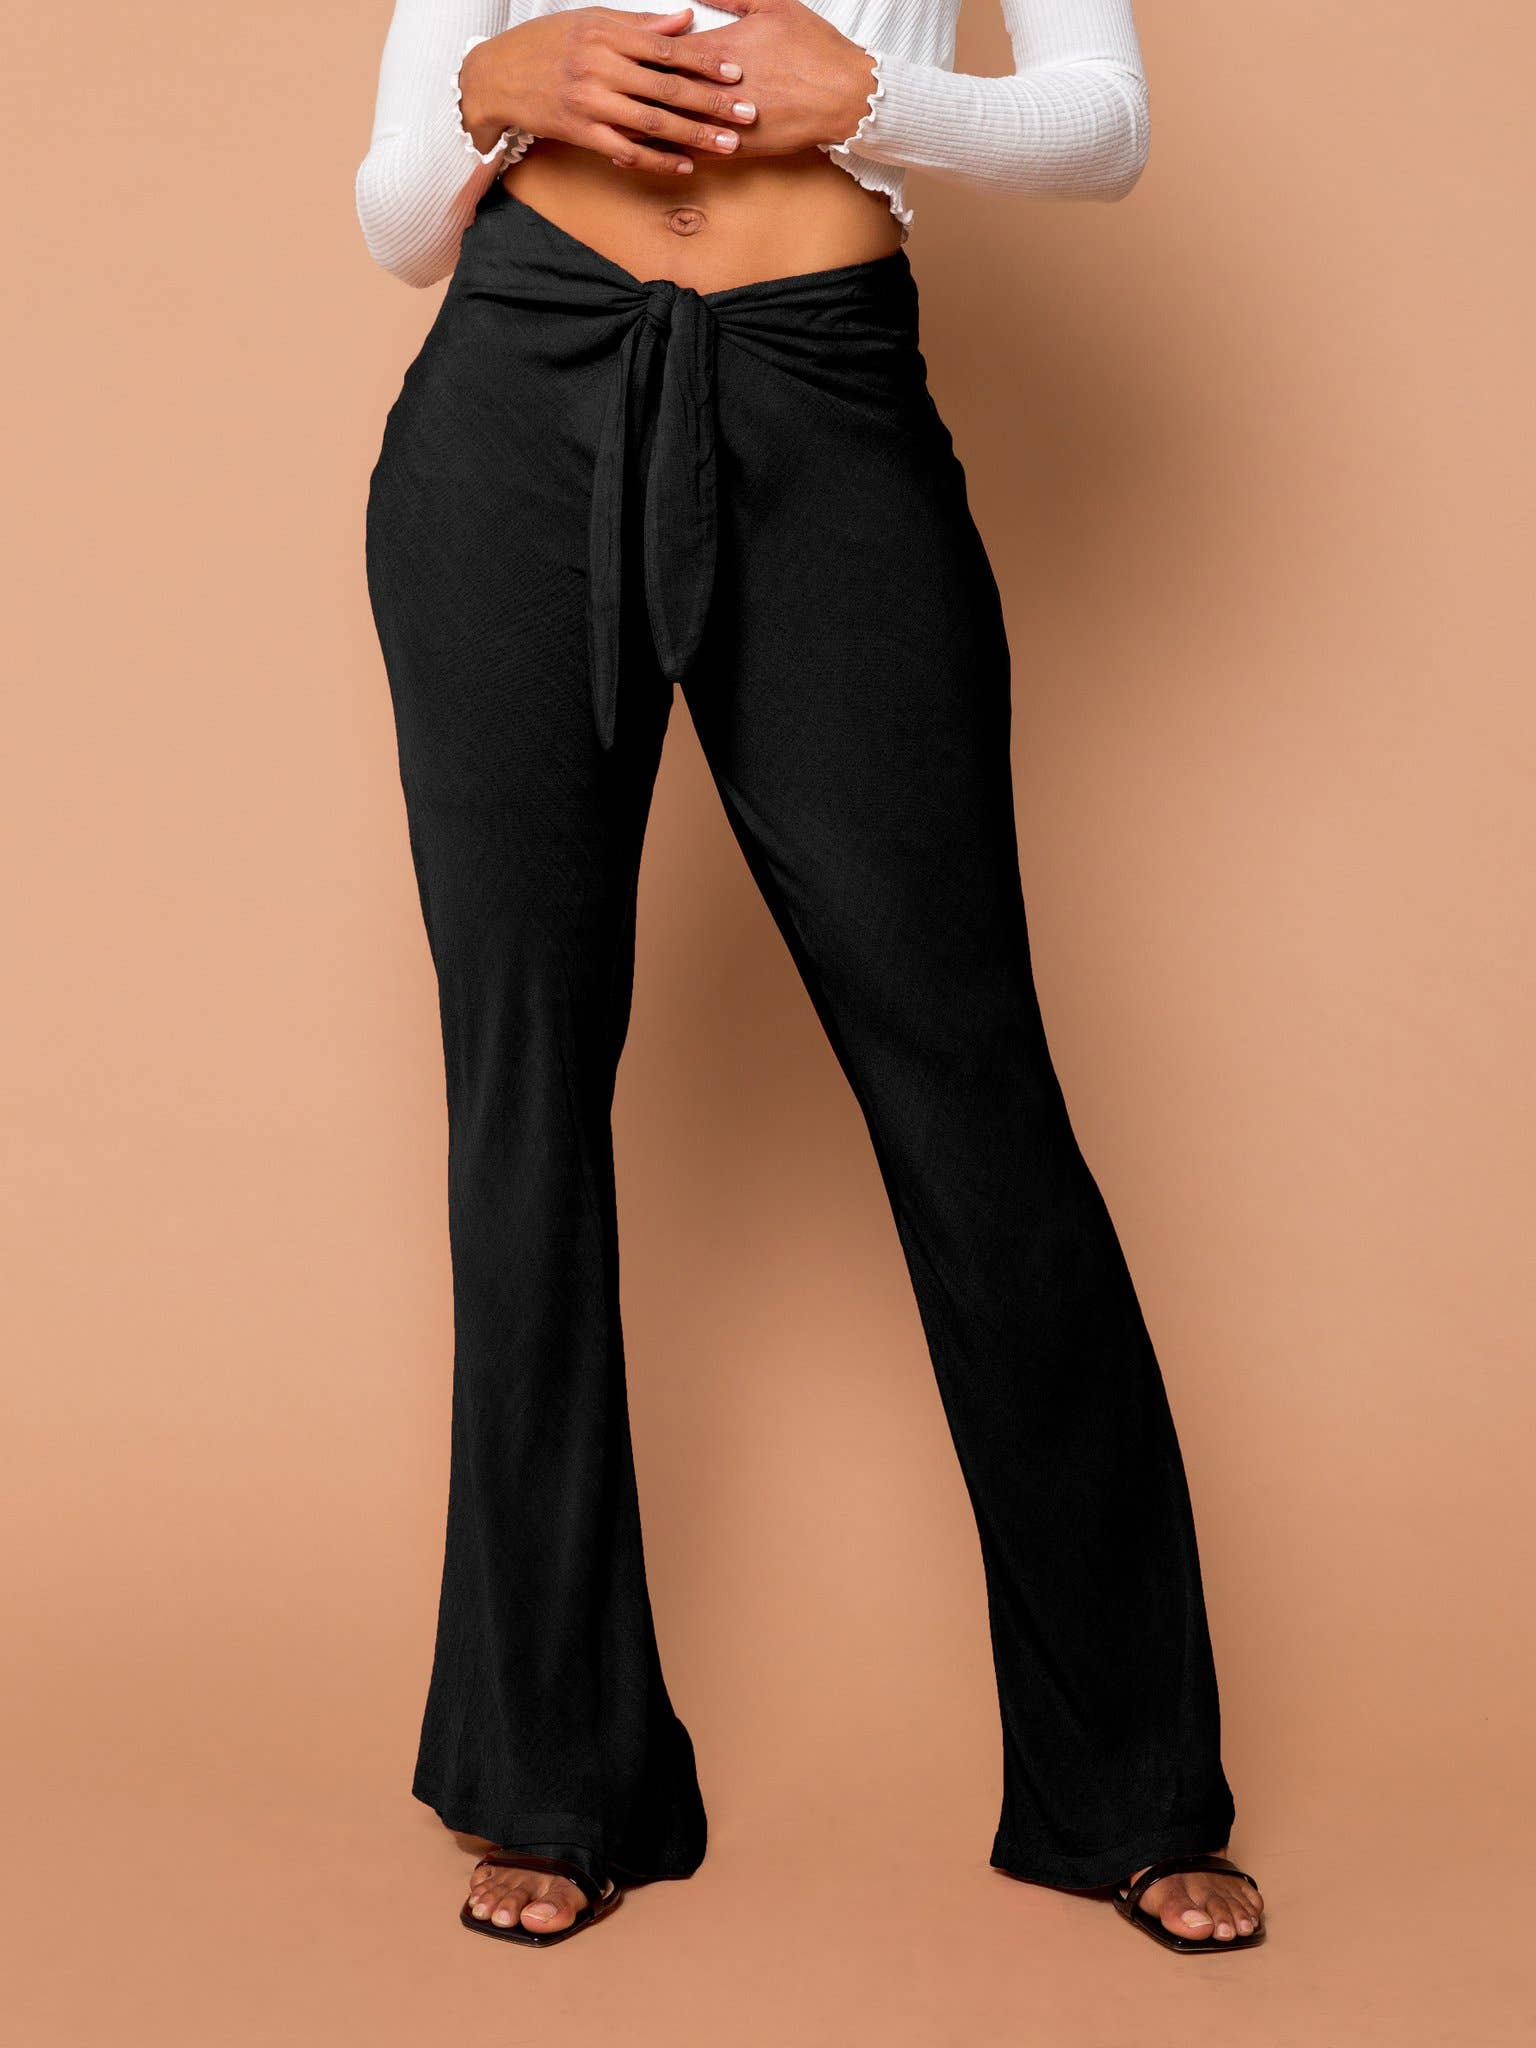 Love Fool Tied Slim Flare Pant